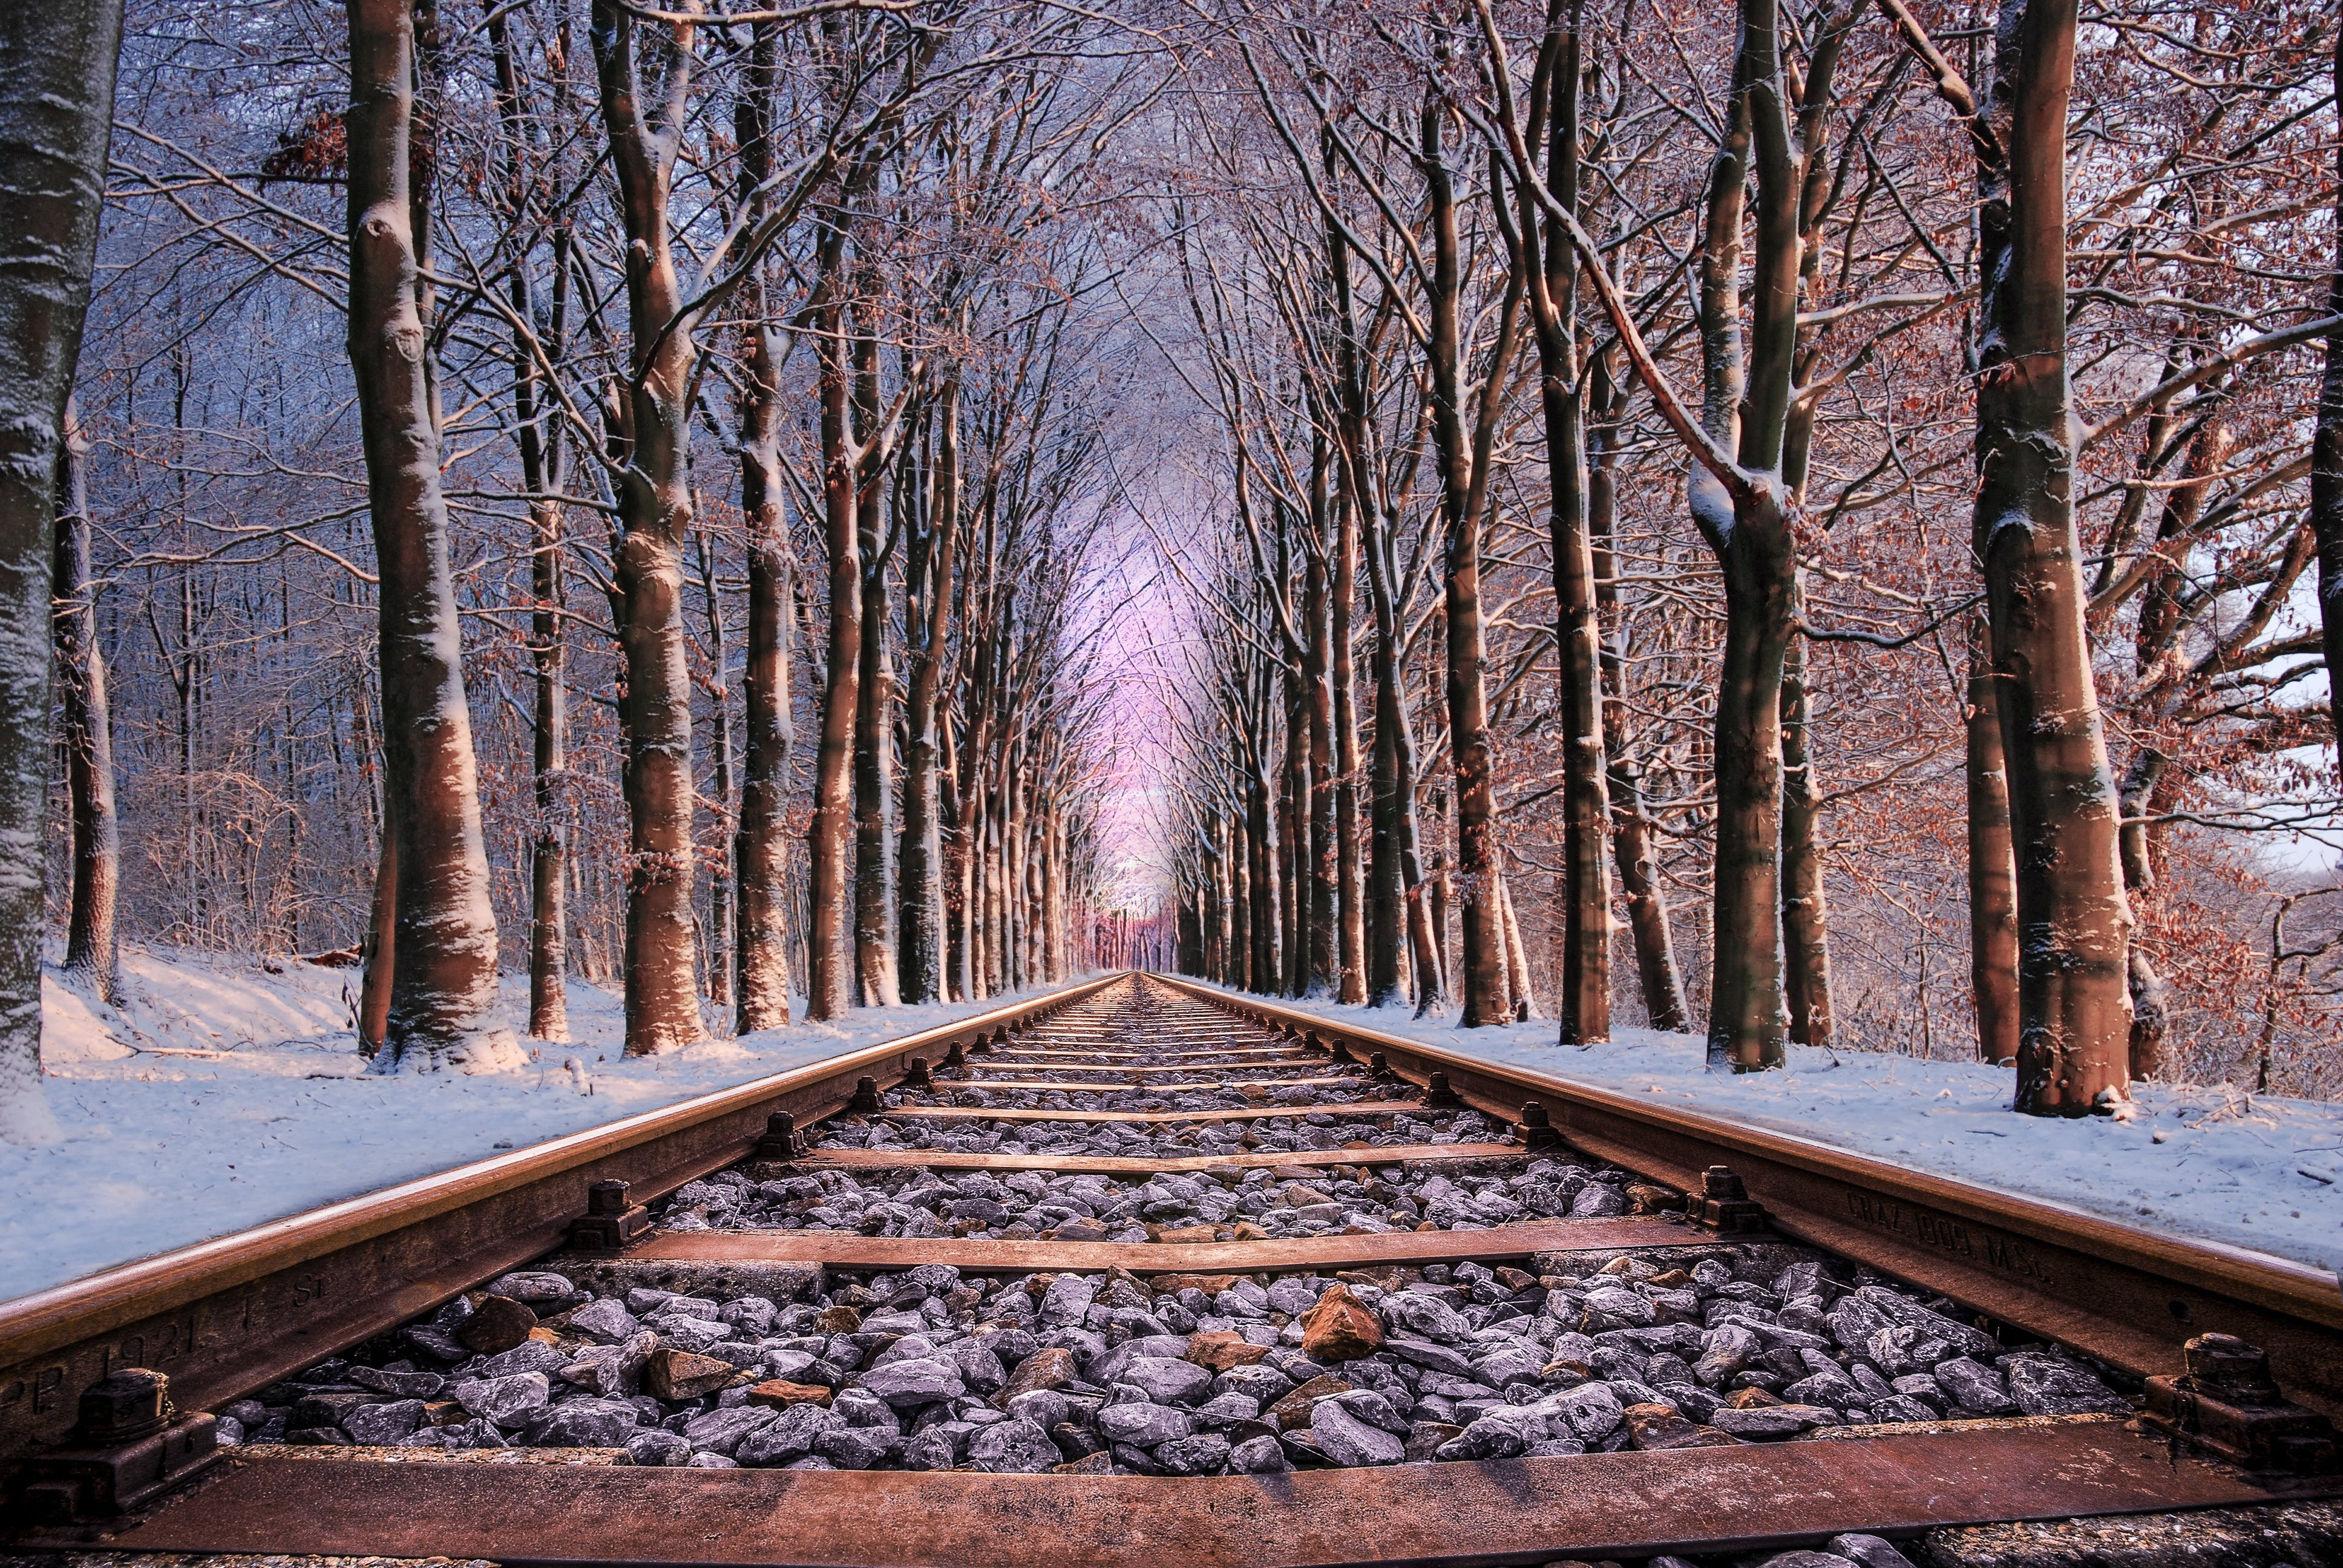 Railroad in Between the Trees